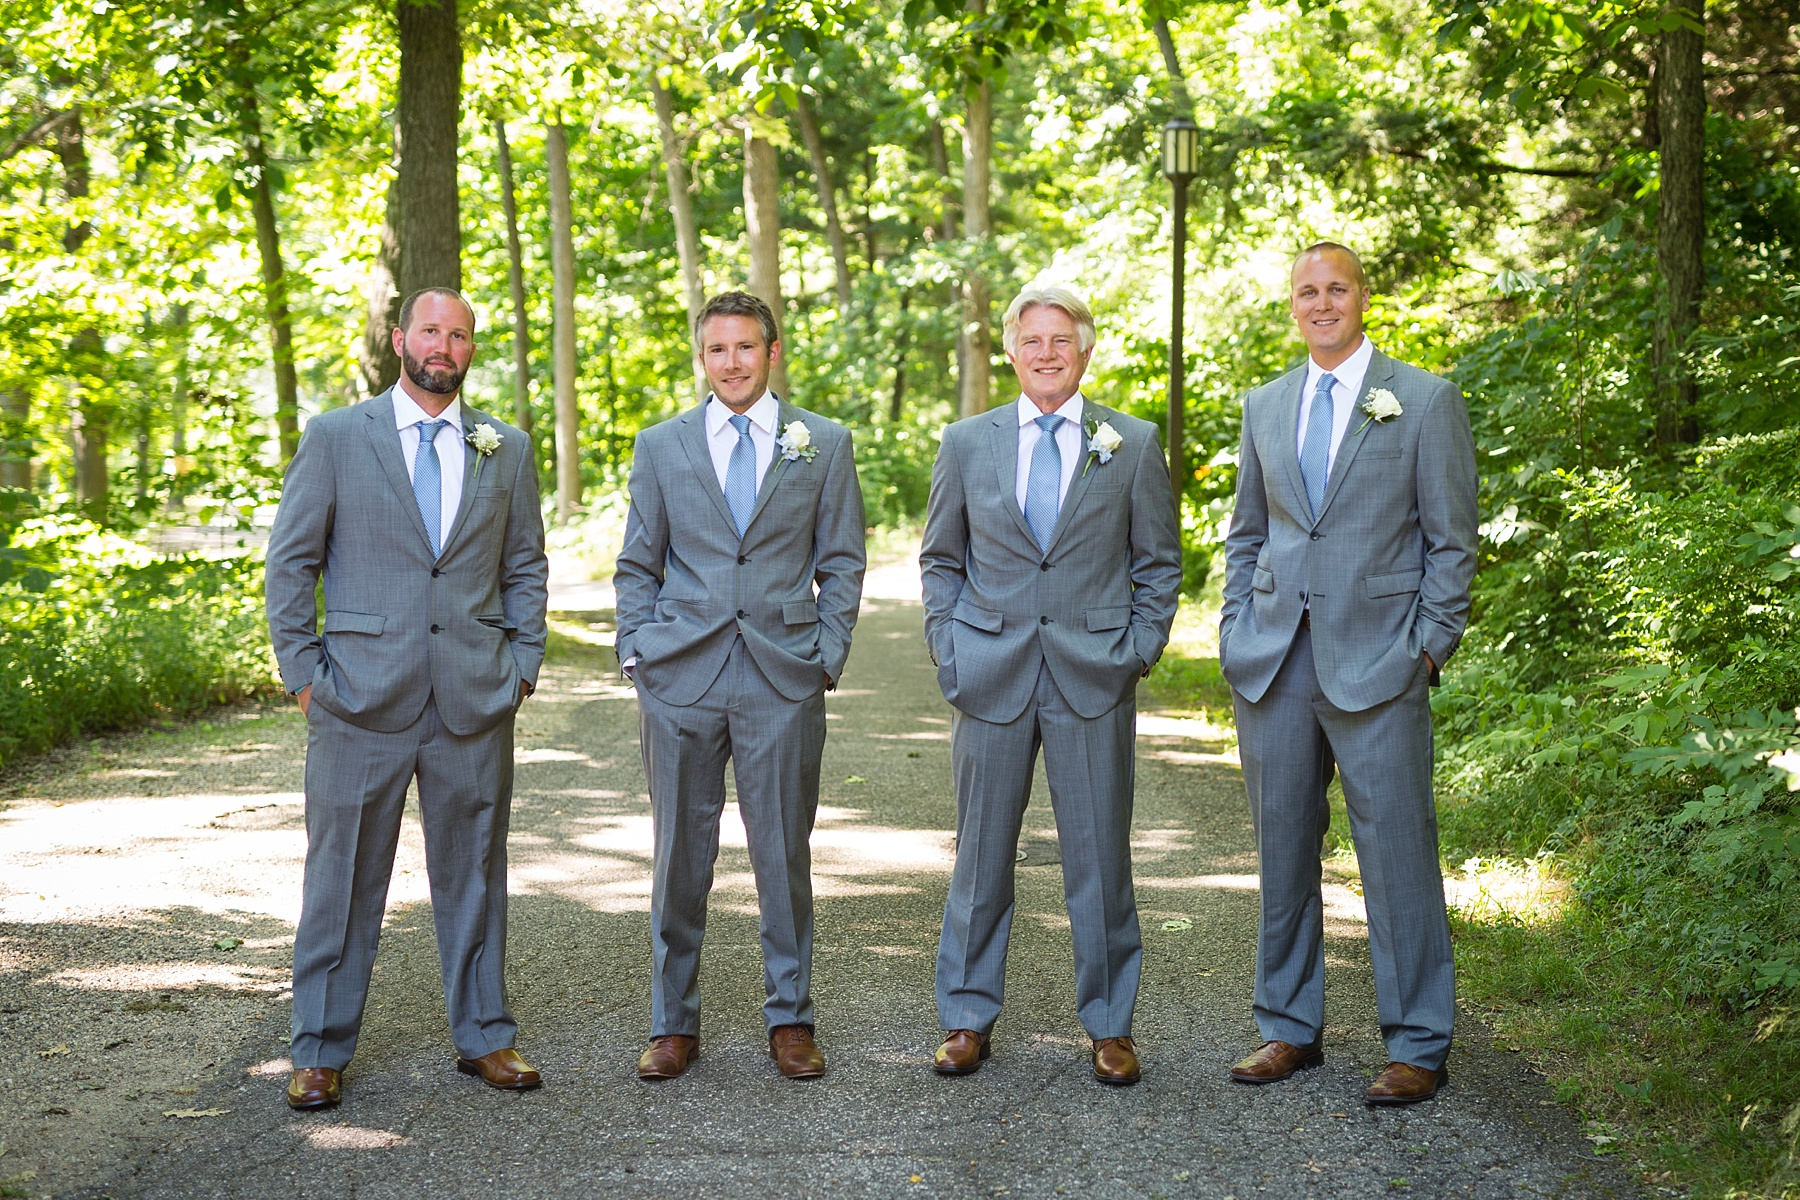 Brandon_Shafer_Photography_Lori_Wes_Gull_Lake_Wedding_0014.jpg